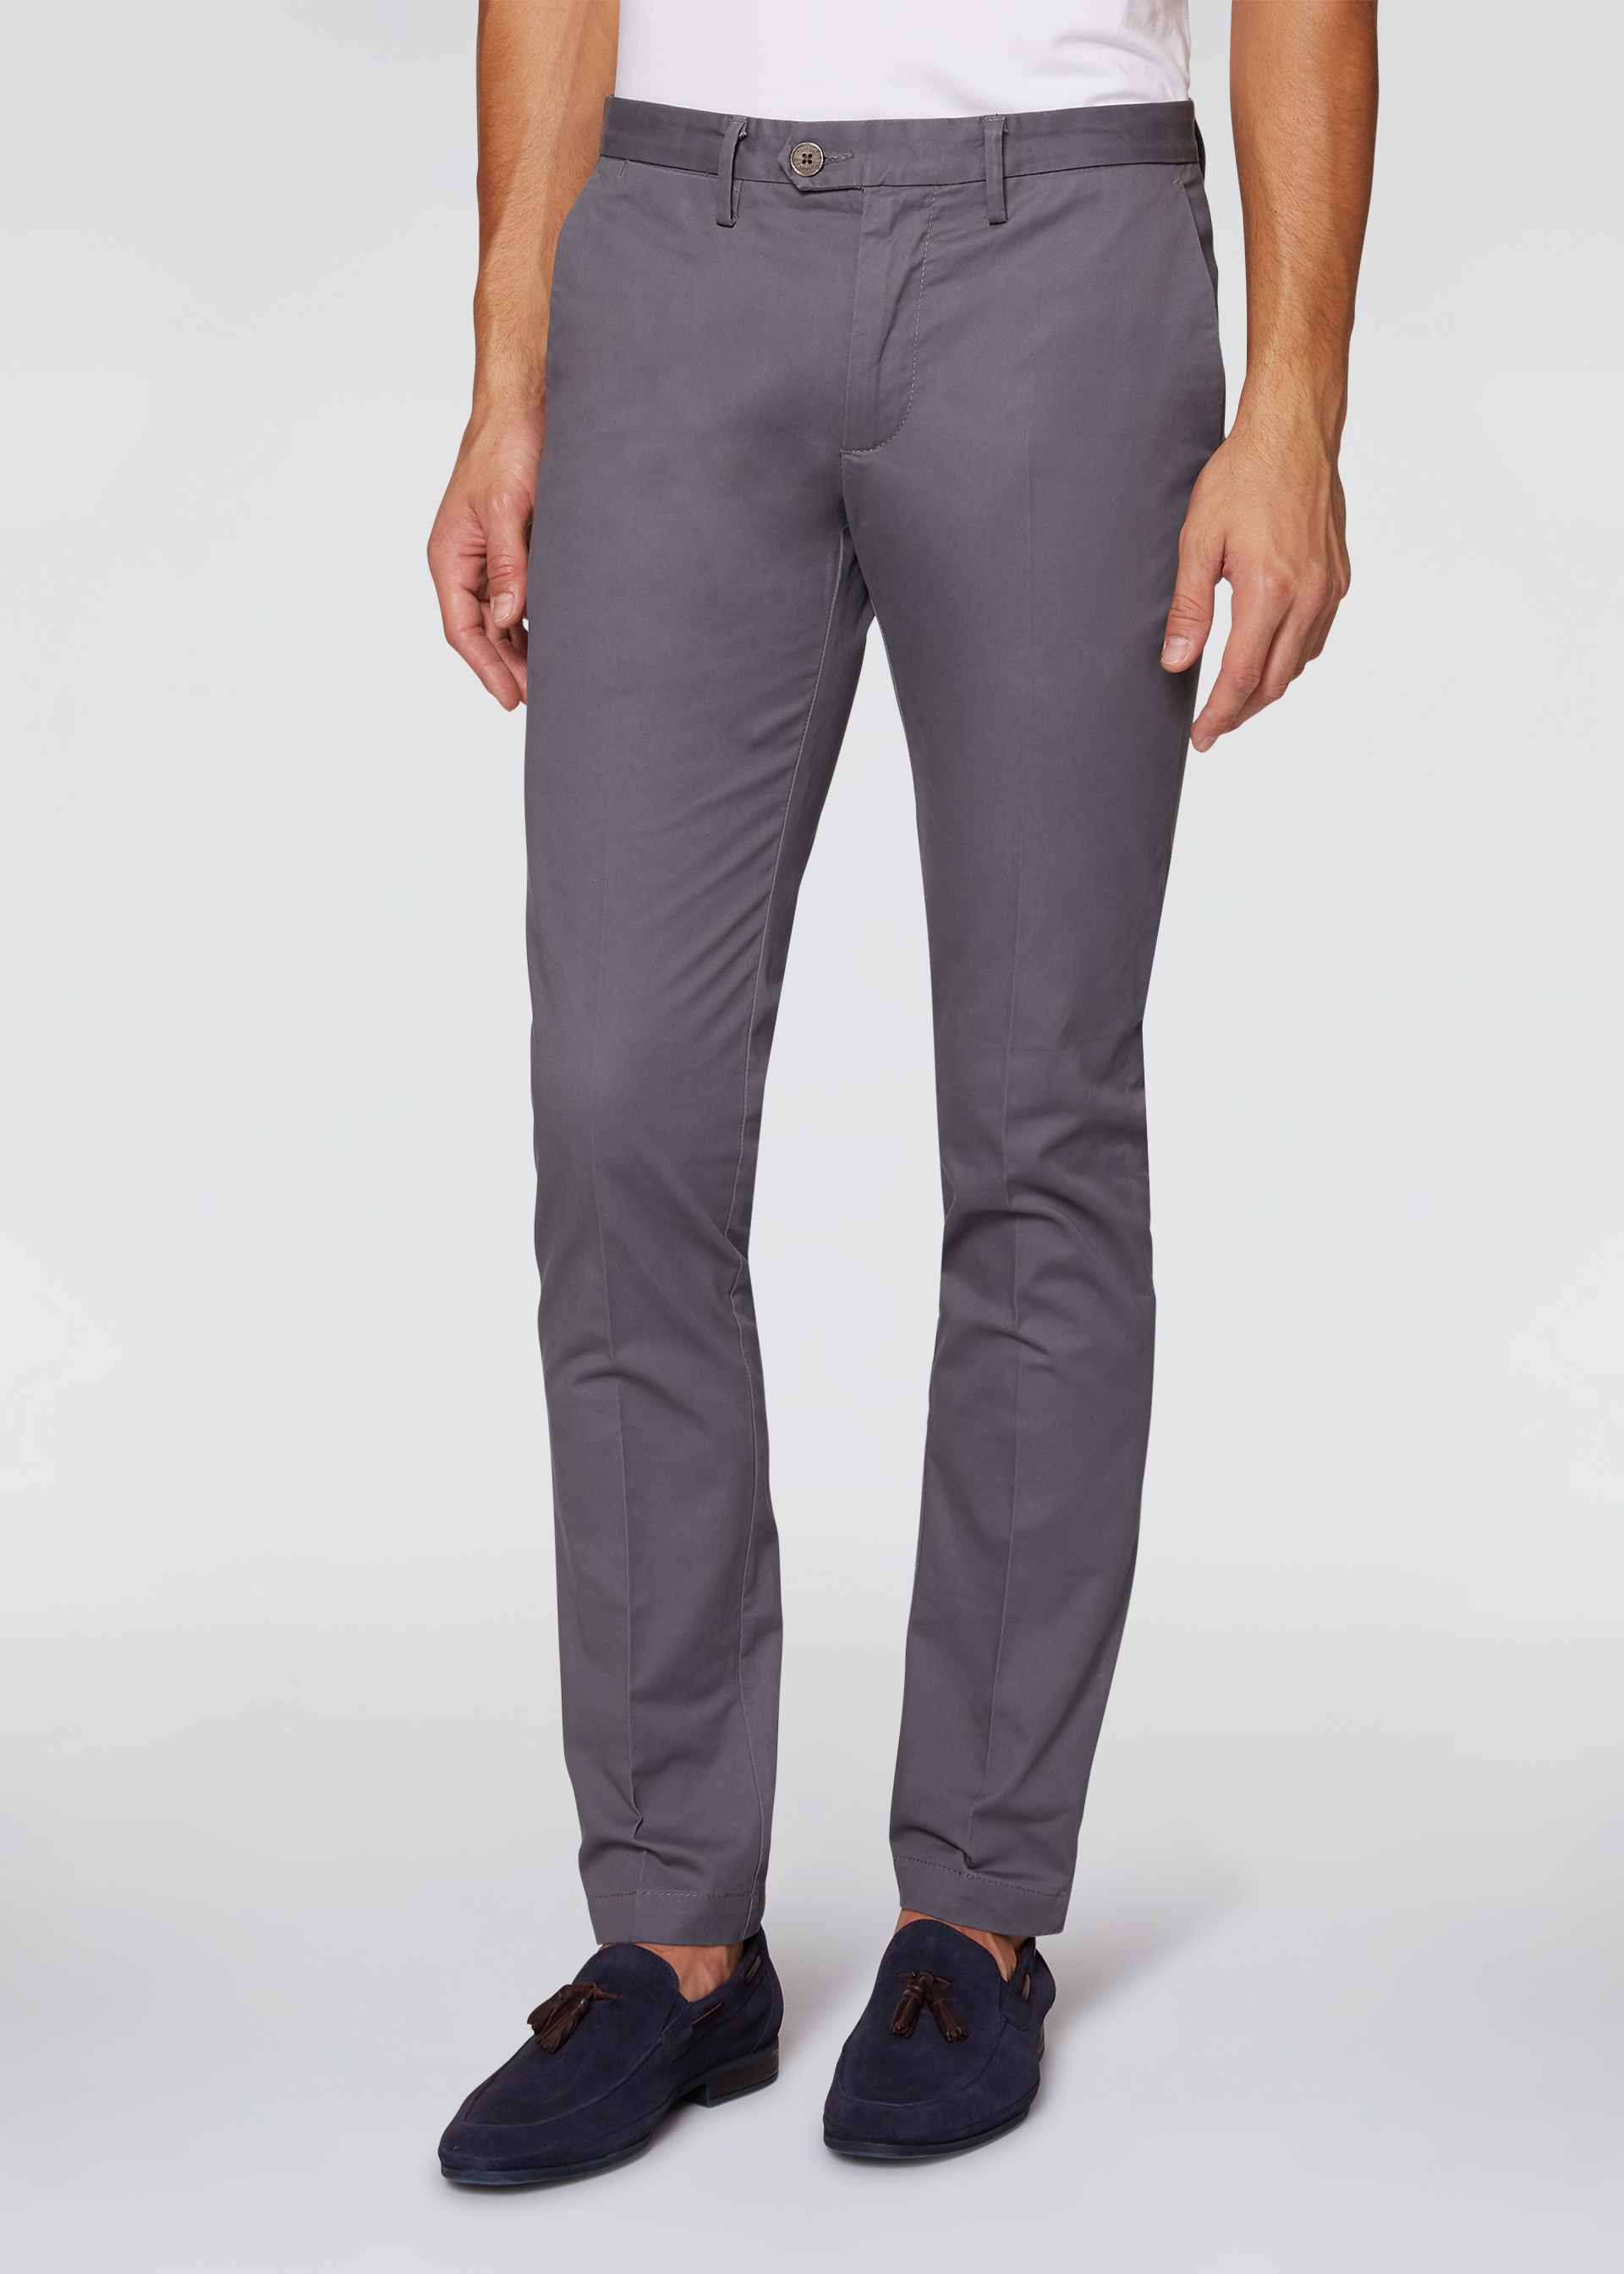 Pantaloni raso stretch